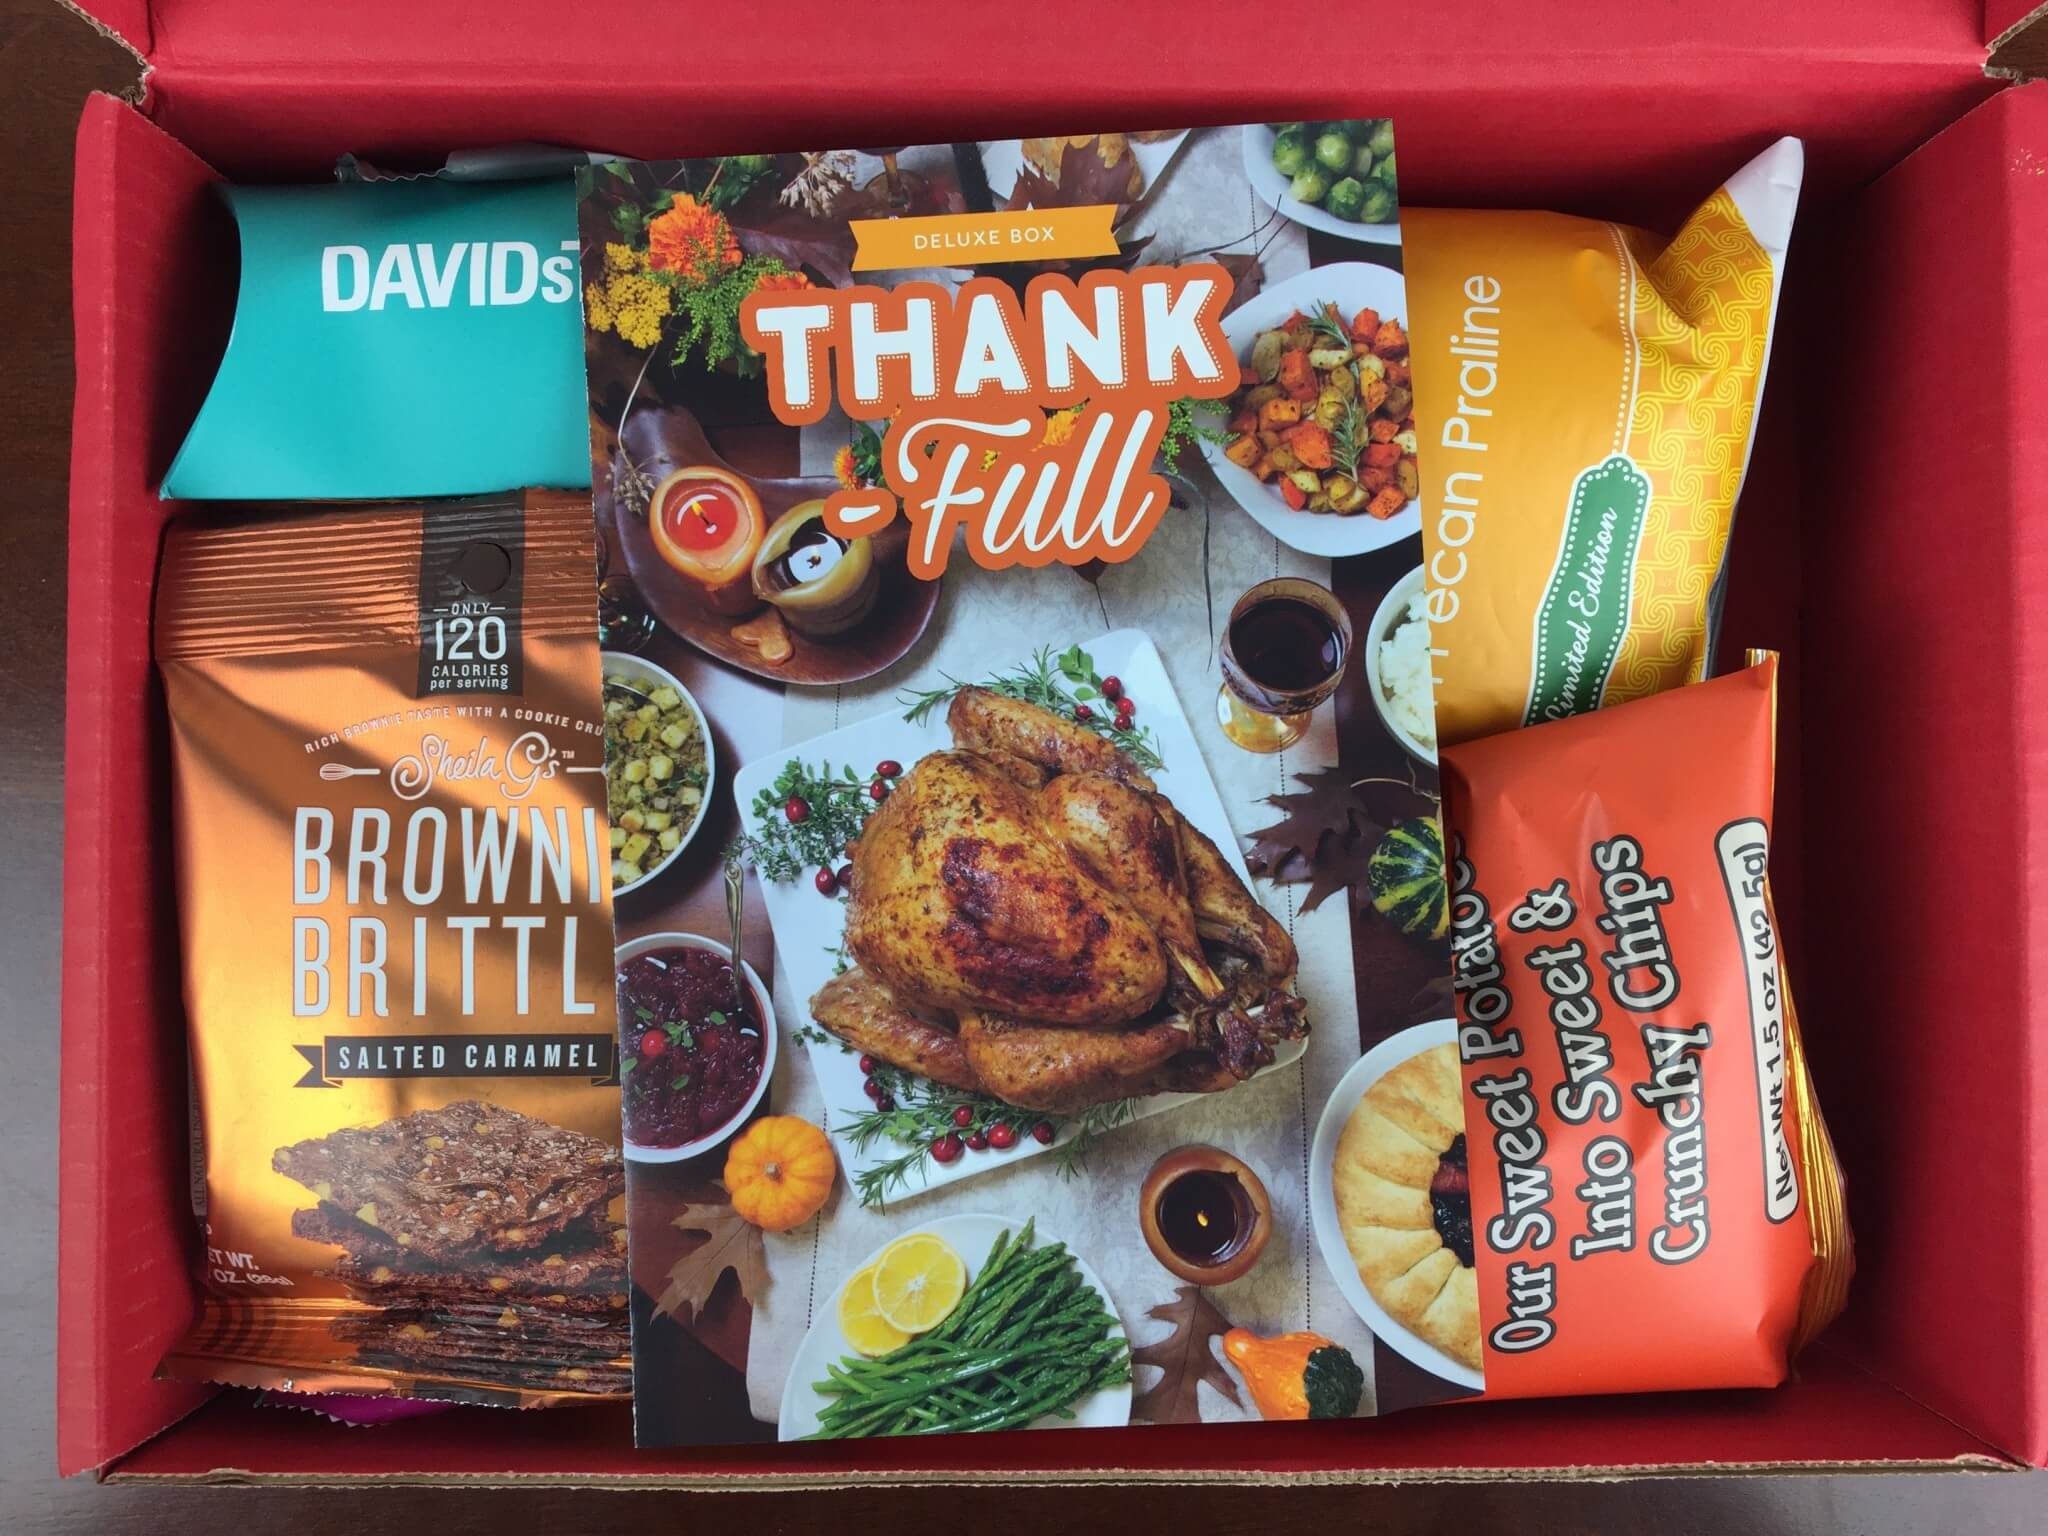 November 2015 Love With Food Deluxe Box Review + Coupon + Rachael Ray Magazine Offer!